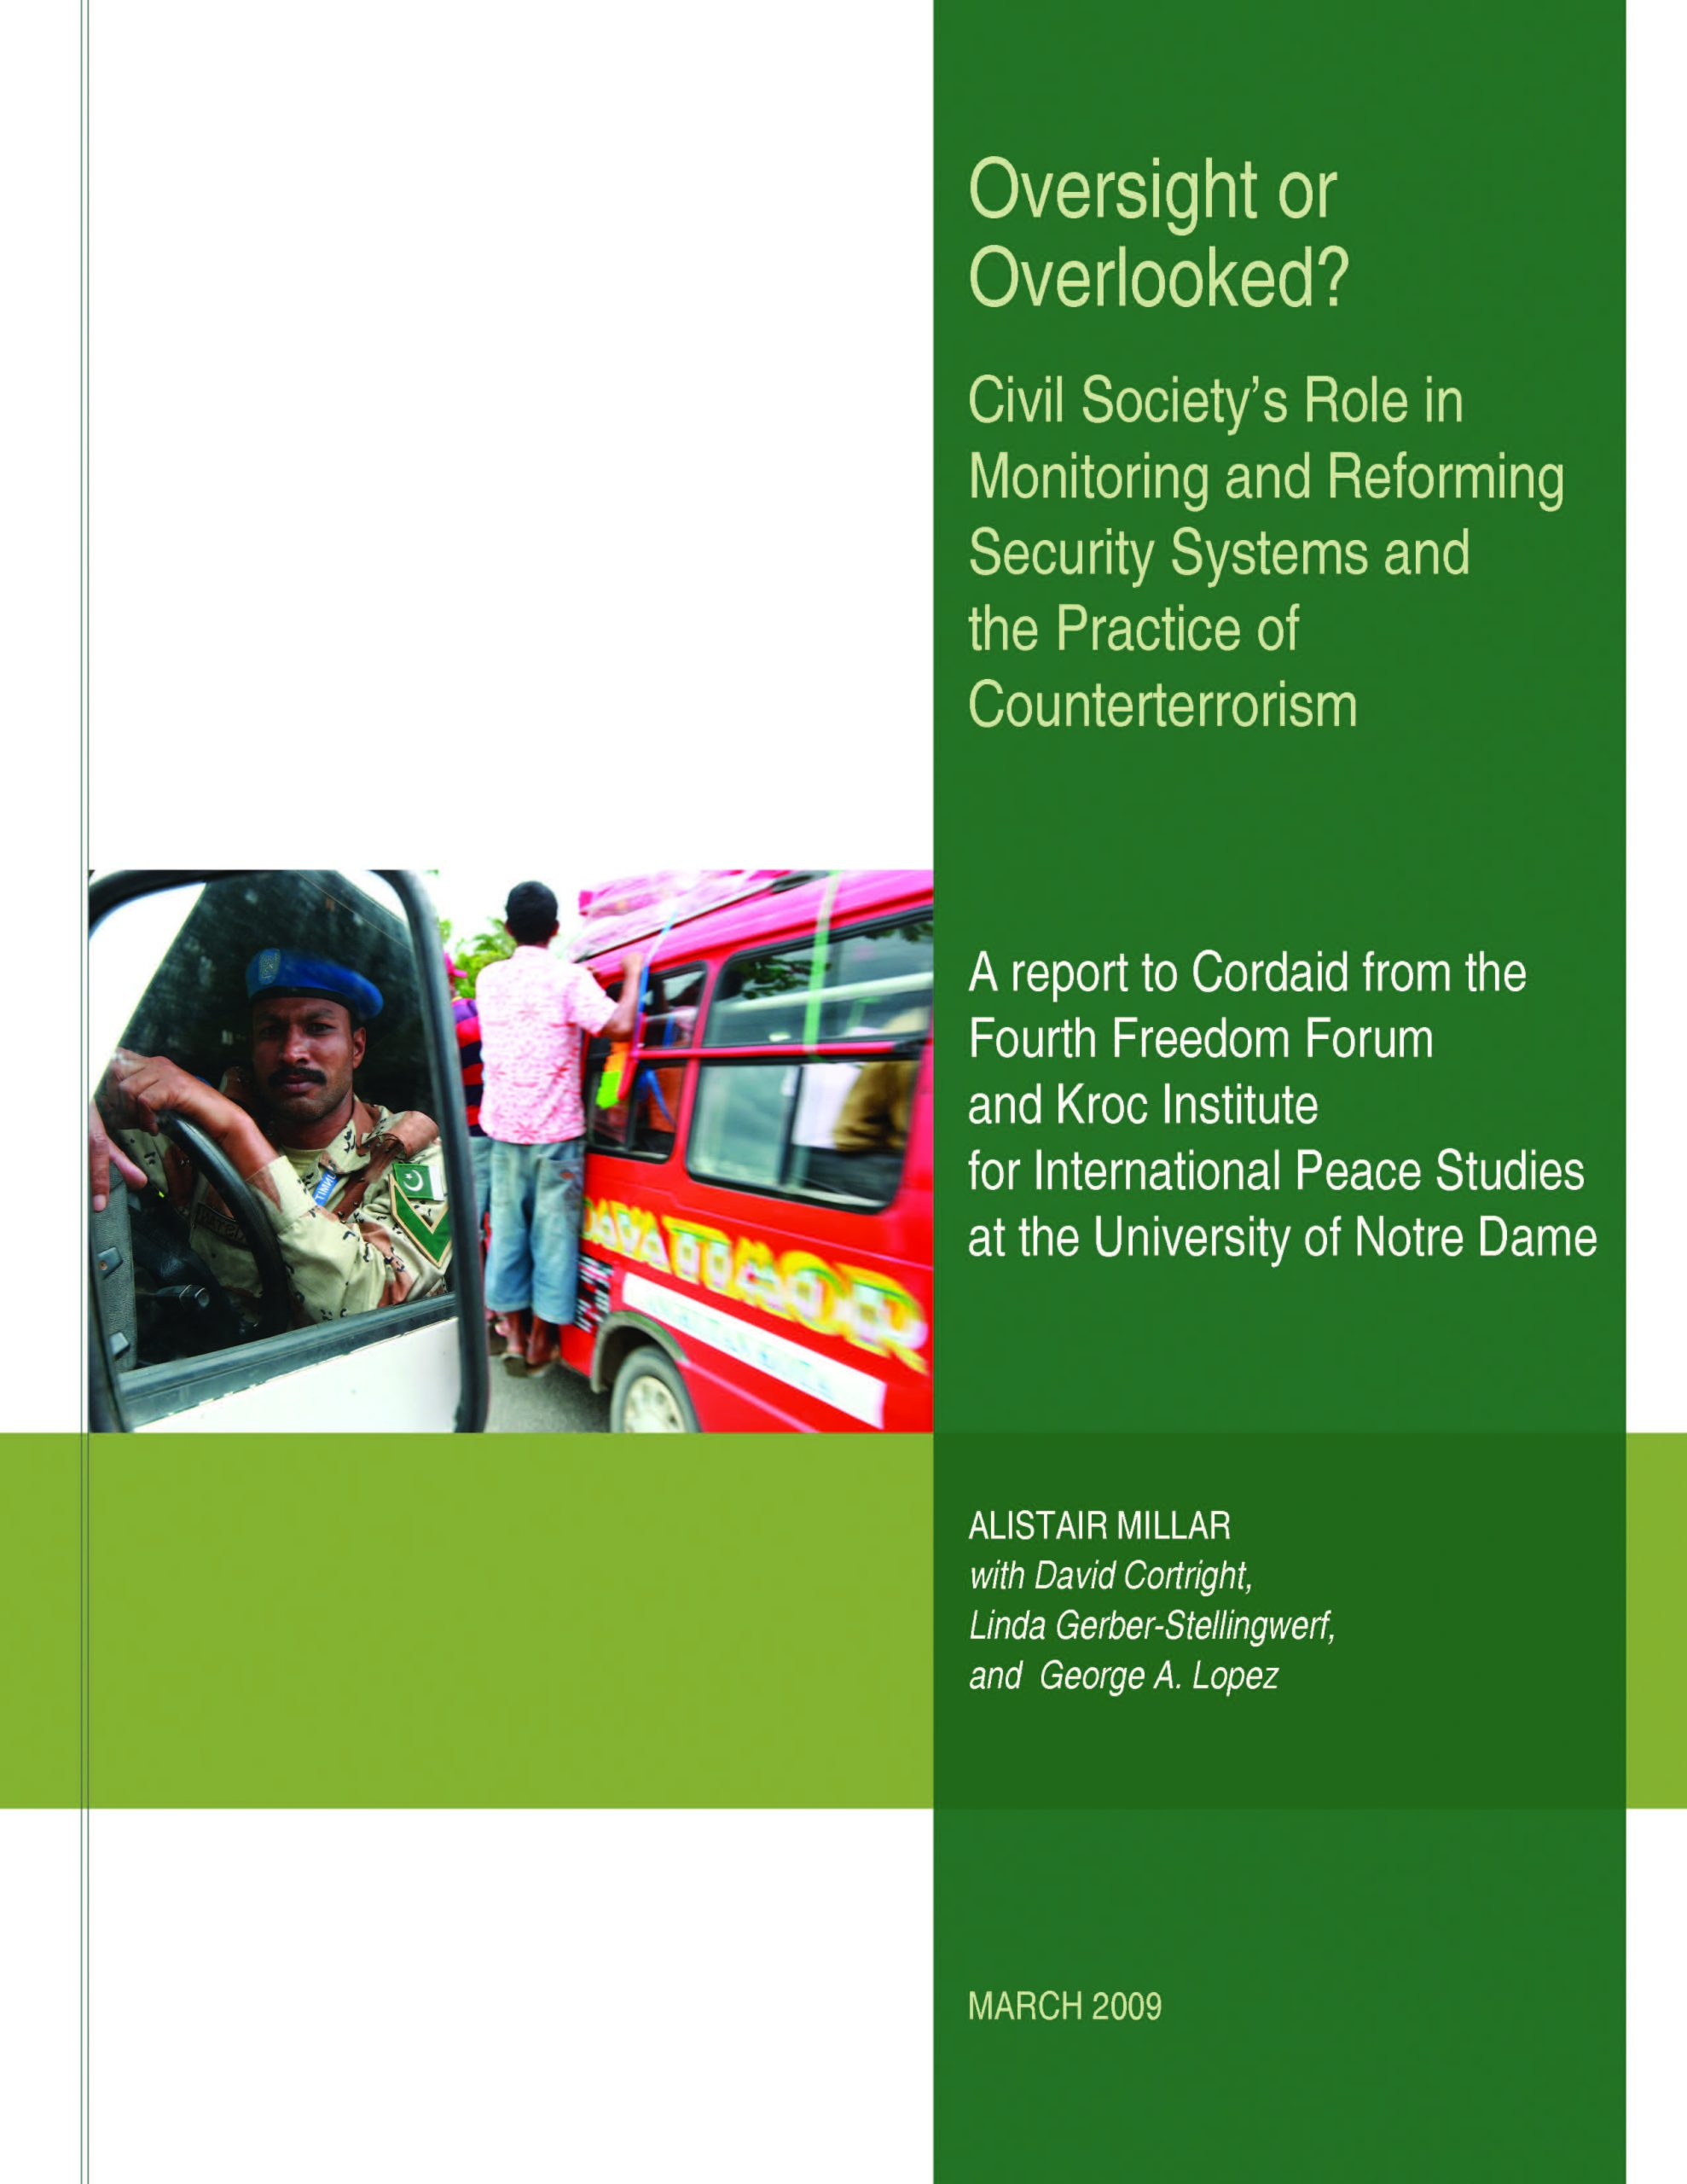 Oversight or Overlooked? Civil Society's Role in Monitoring and Reforming Security Systems and the Practice of Counterterrorism